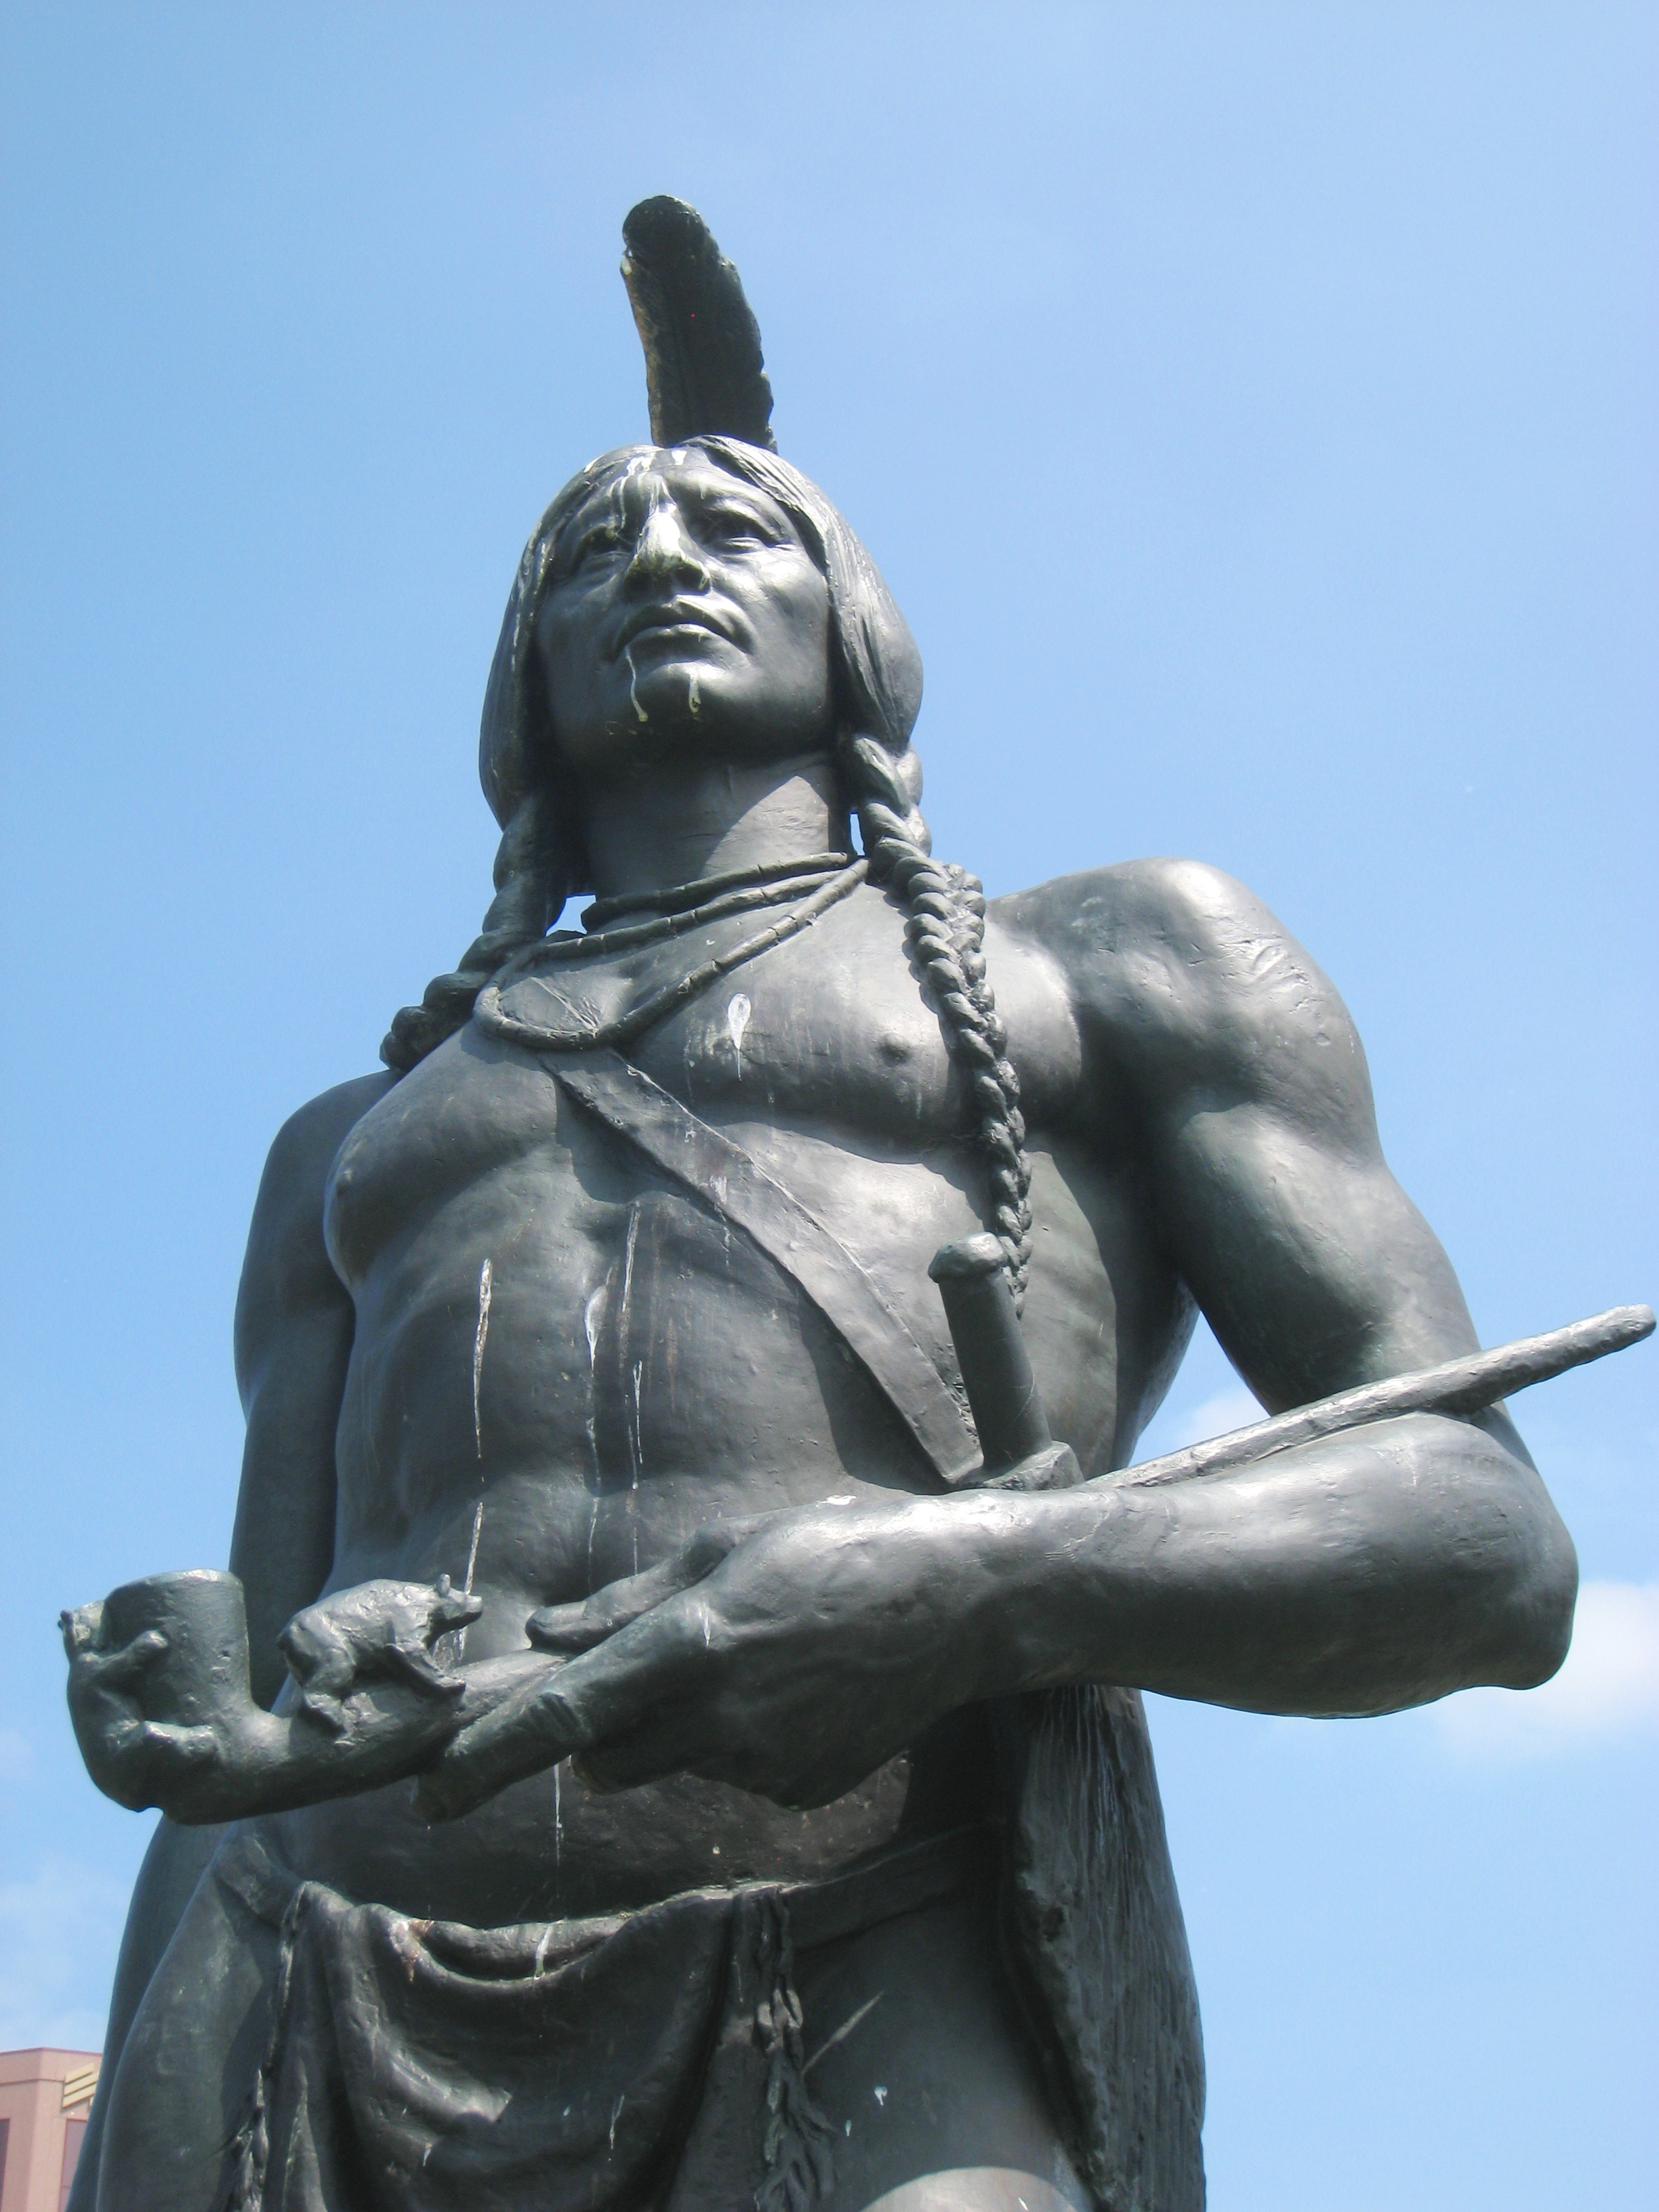 https://upload.wikimedia.org/wikipedia/commons/5/58/Massasoit%2C_KC_MO_-_detail.JPG